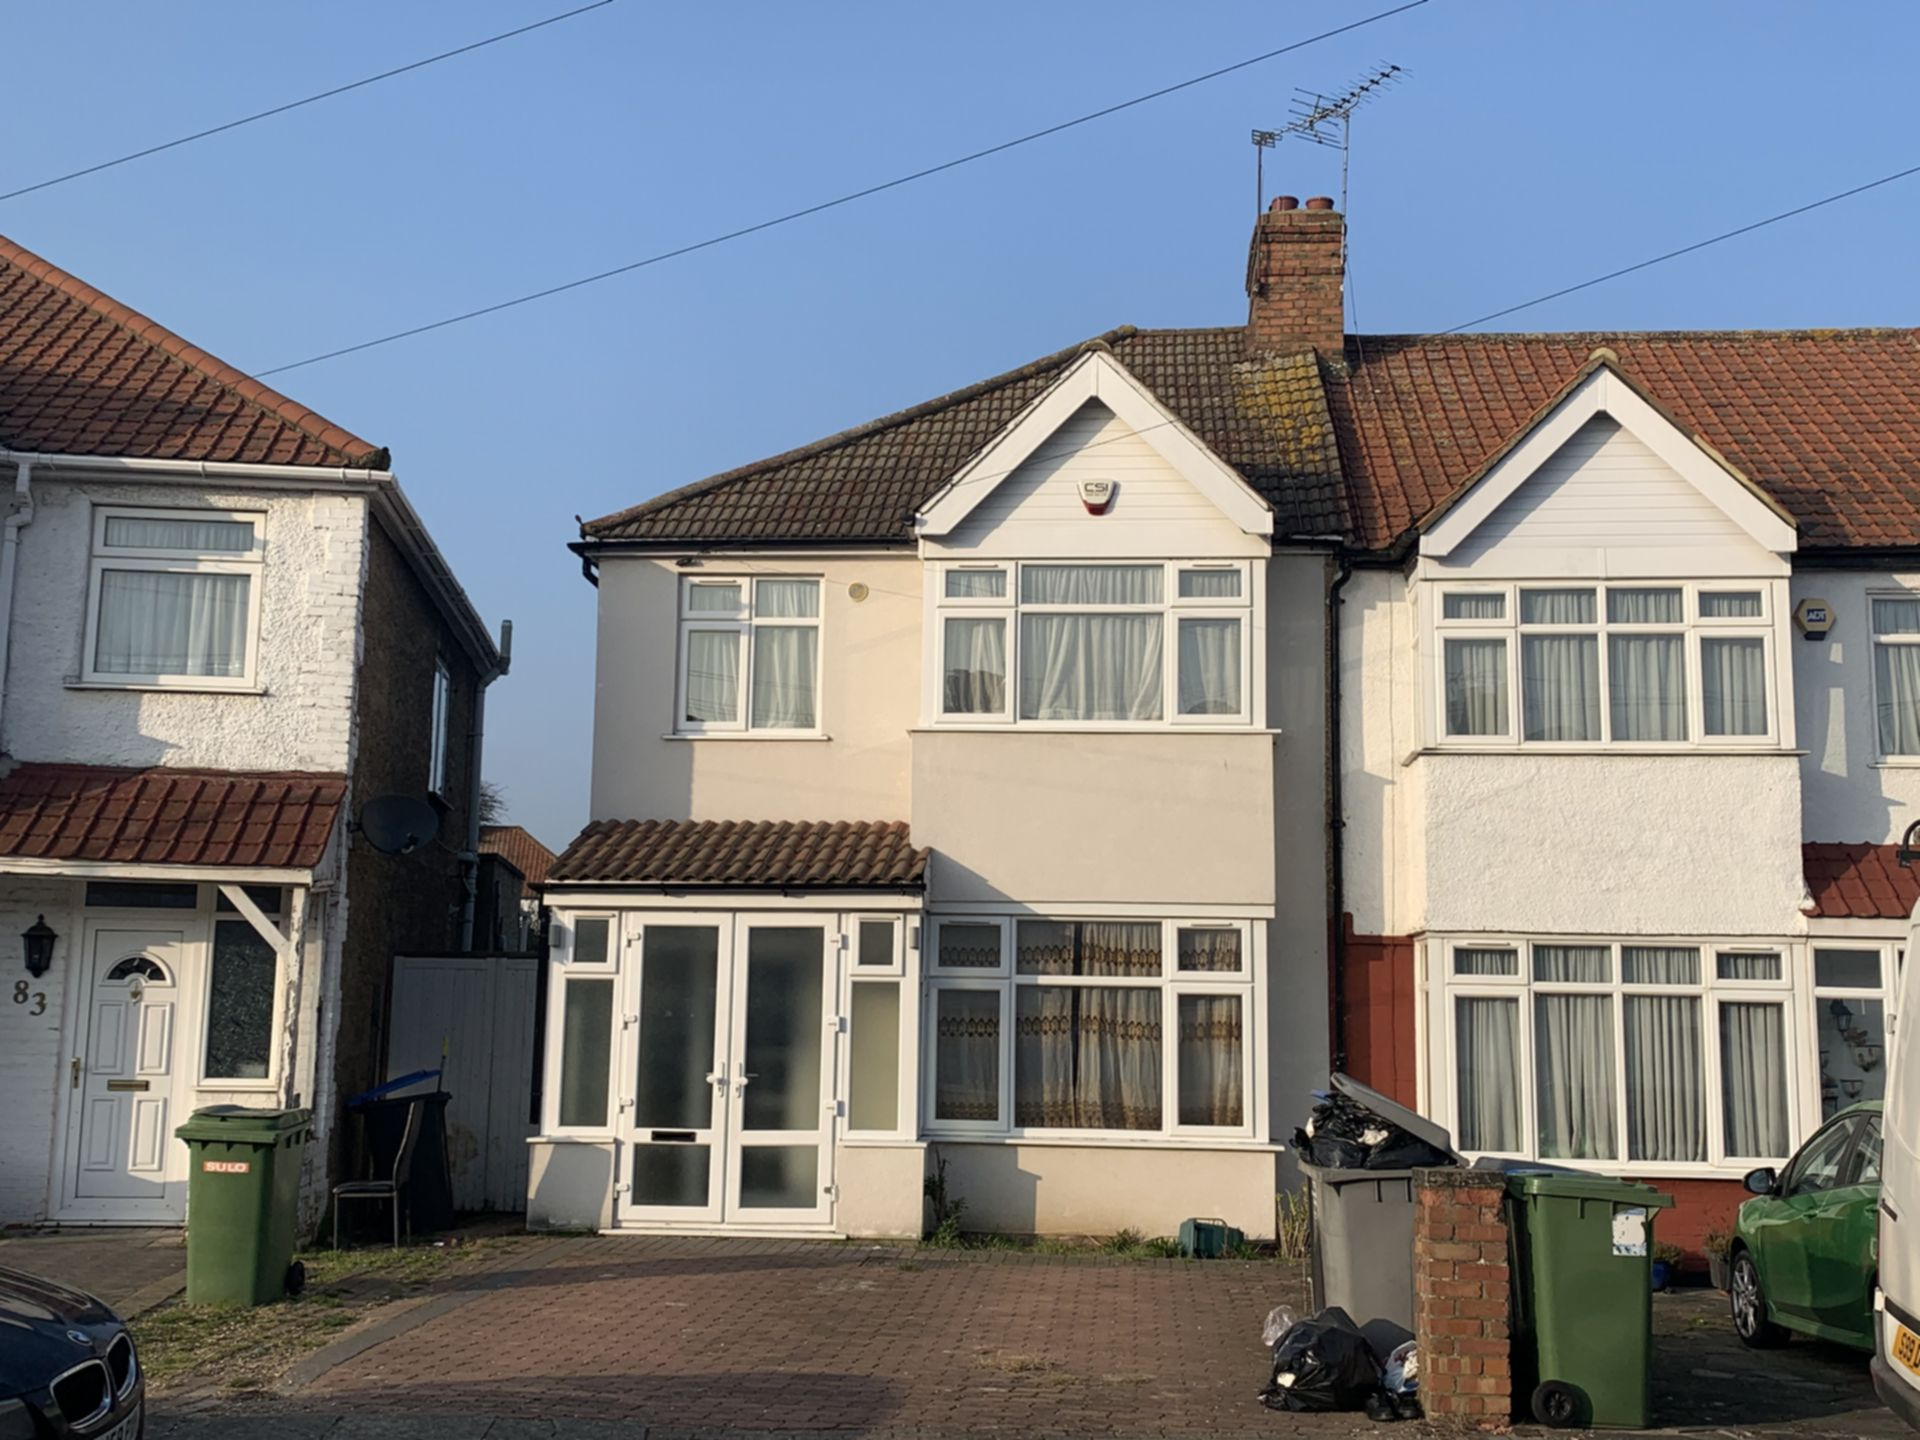 4 Bedroom 3 Bed House To Rent In Kingsbury London Nw9